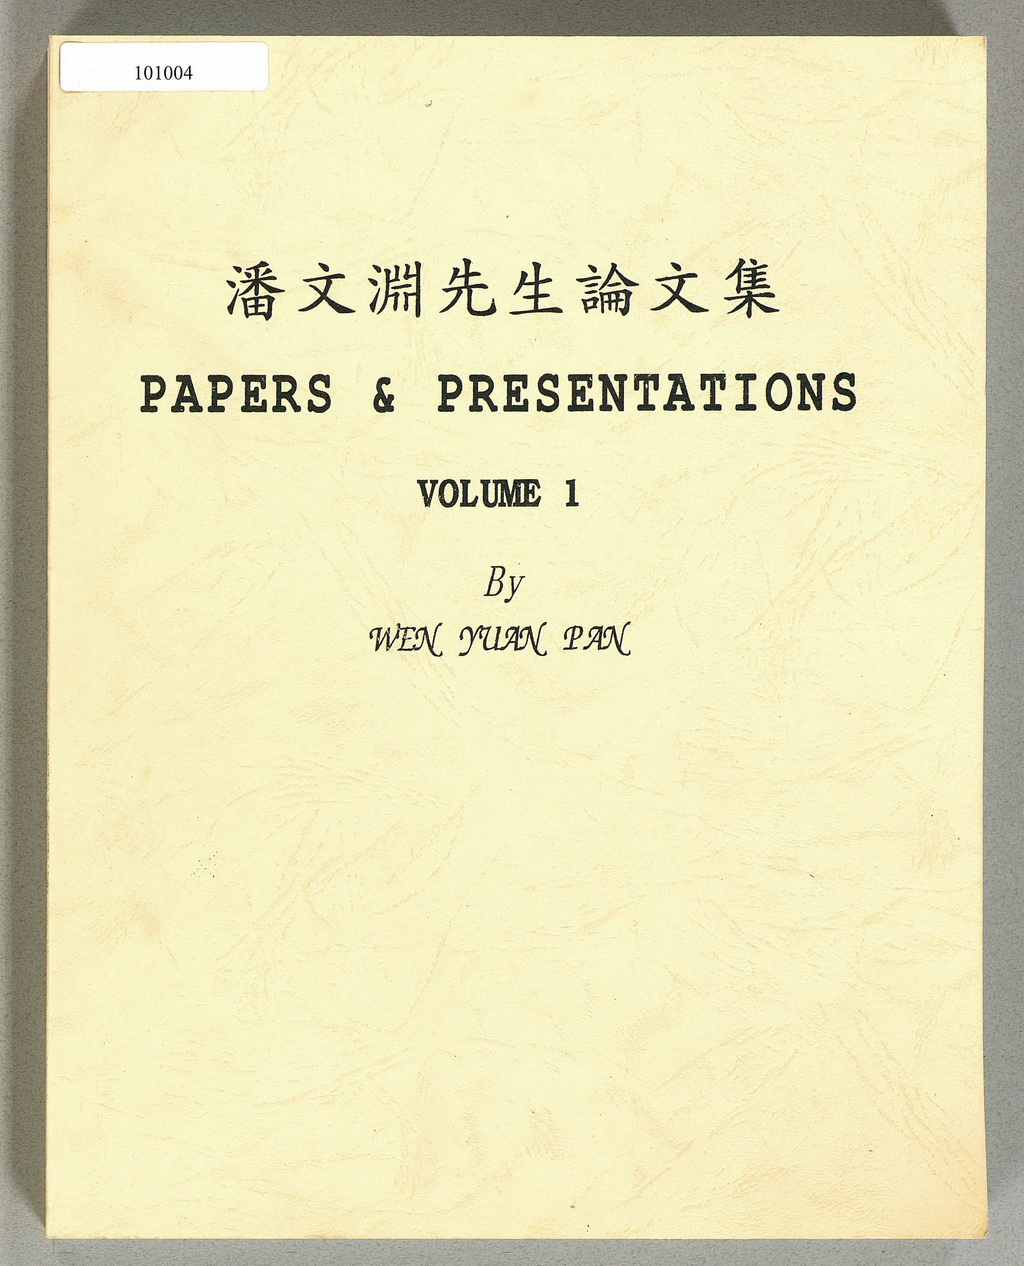 潘文淵先生論文集(1)    PAPERS & PRESENTATIONS VOLUME 1 By WEN YUAN PAN